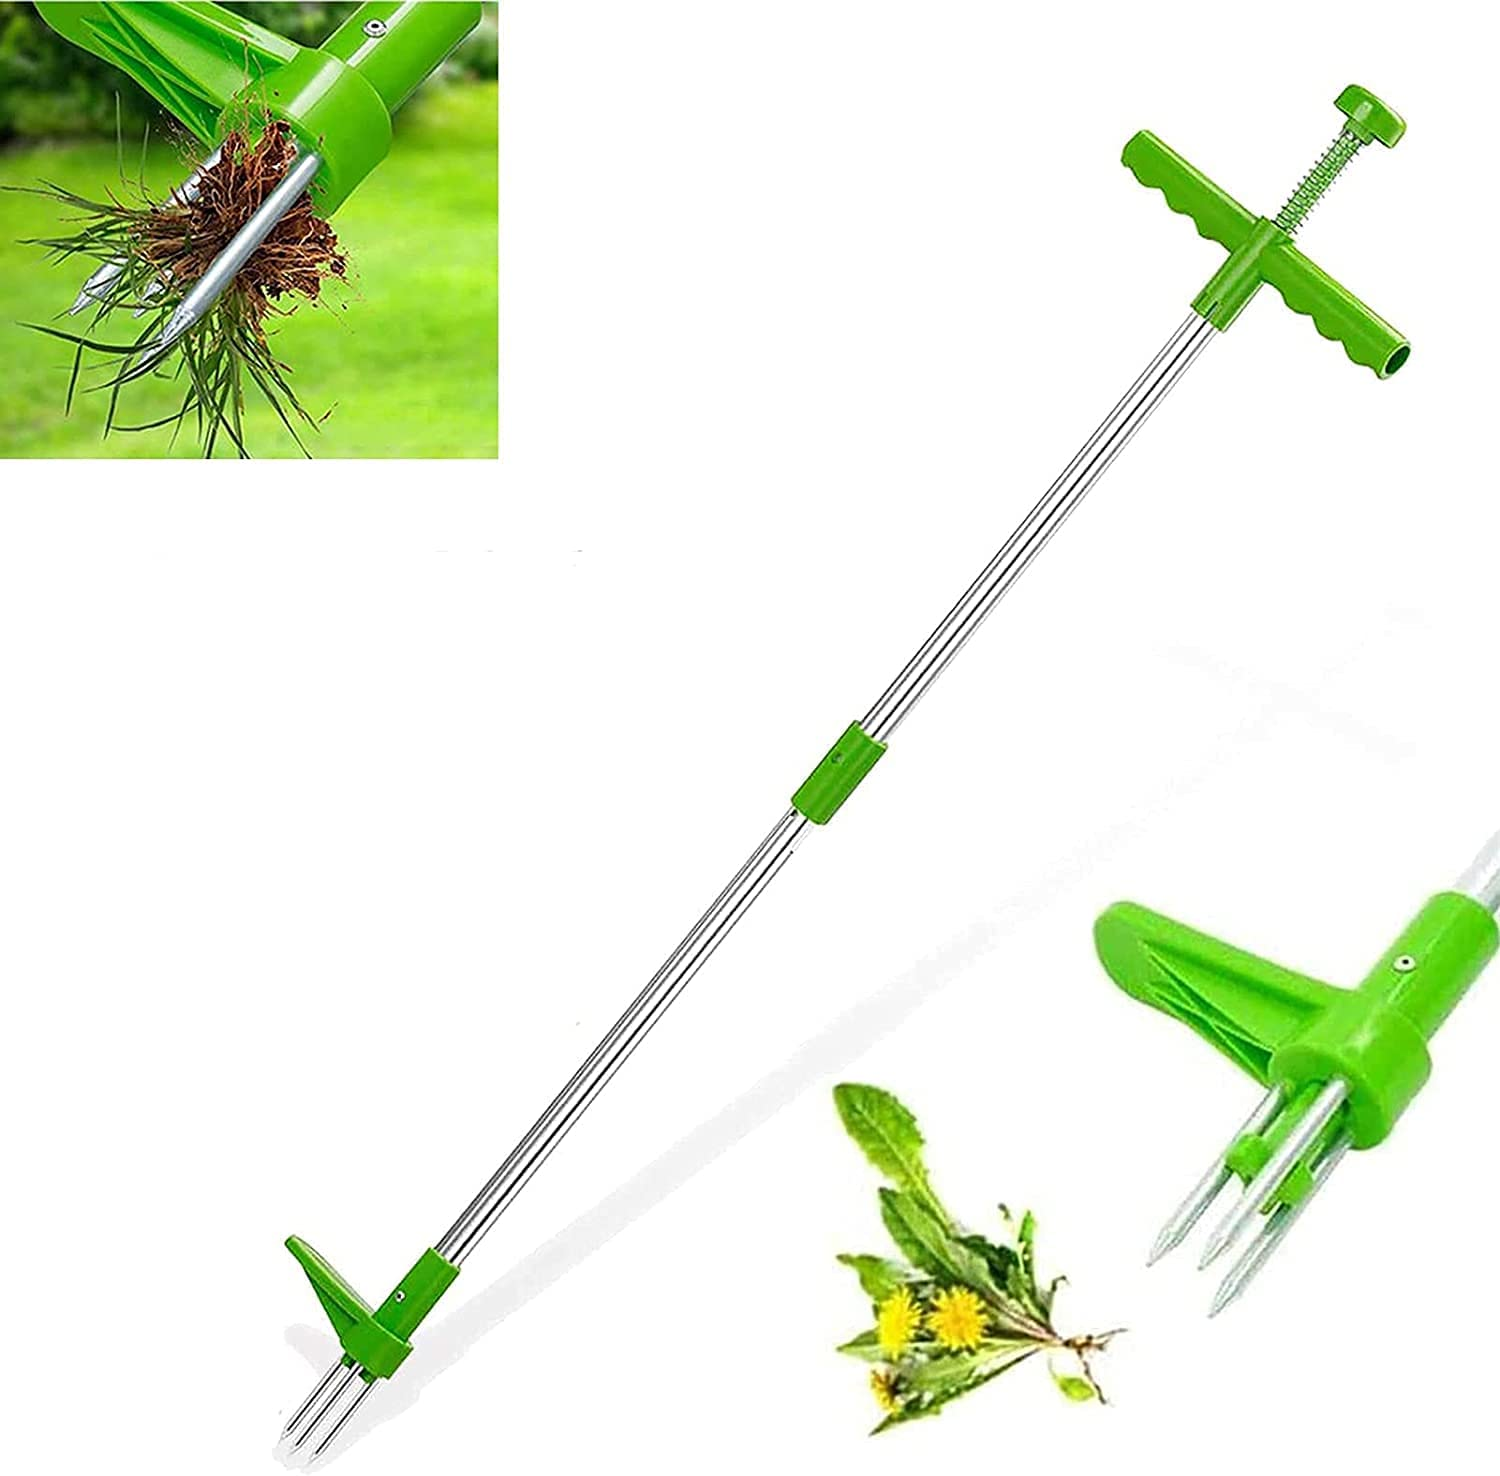 Standing Plant Root Remover with 3 Stainless Steel Claws, Weed Puller Tool Garden Stand Up Weeder with Claws for Dandelion, Steel Twist Hand Weed Root Pulling Tool, Picker with 39